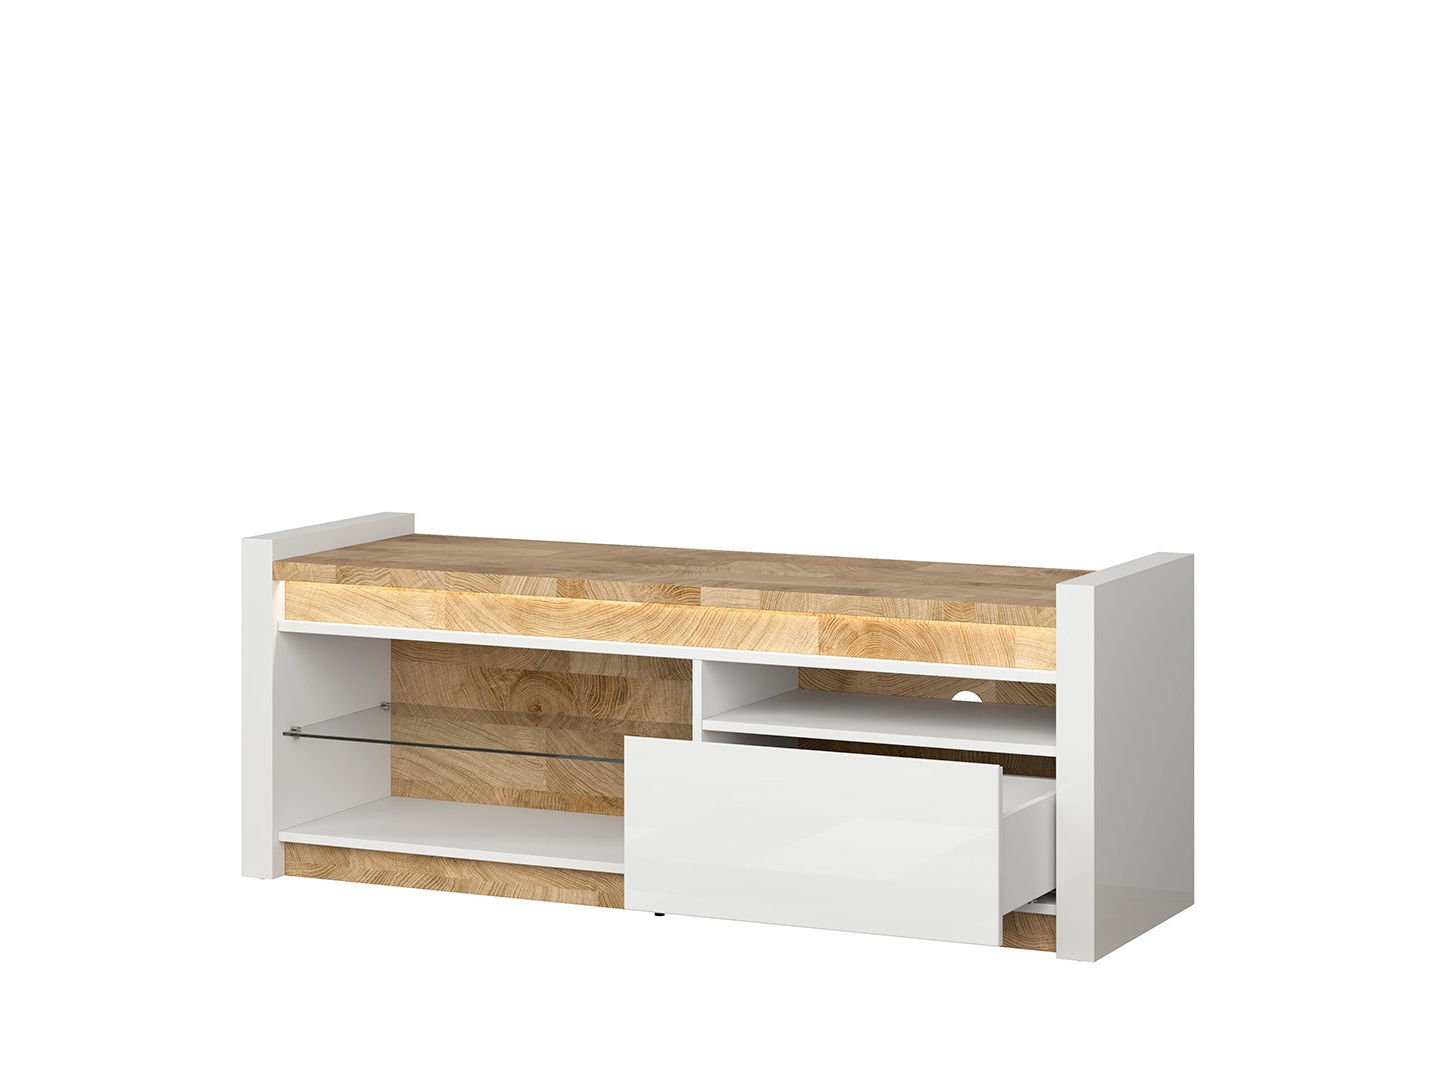 Fashionable Zimtown Modern Tv Stands High Gloss Media Console Cabinet With Led Shelf And Drawers For Modern White High Gloss Tv Cabinet Entertainment Unit With (View 1 of 10)